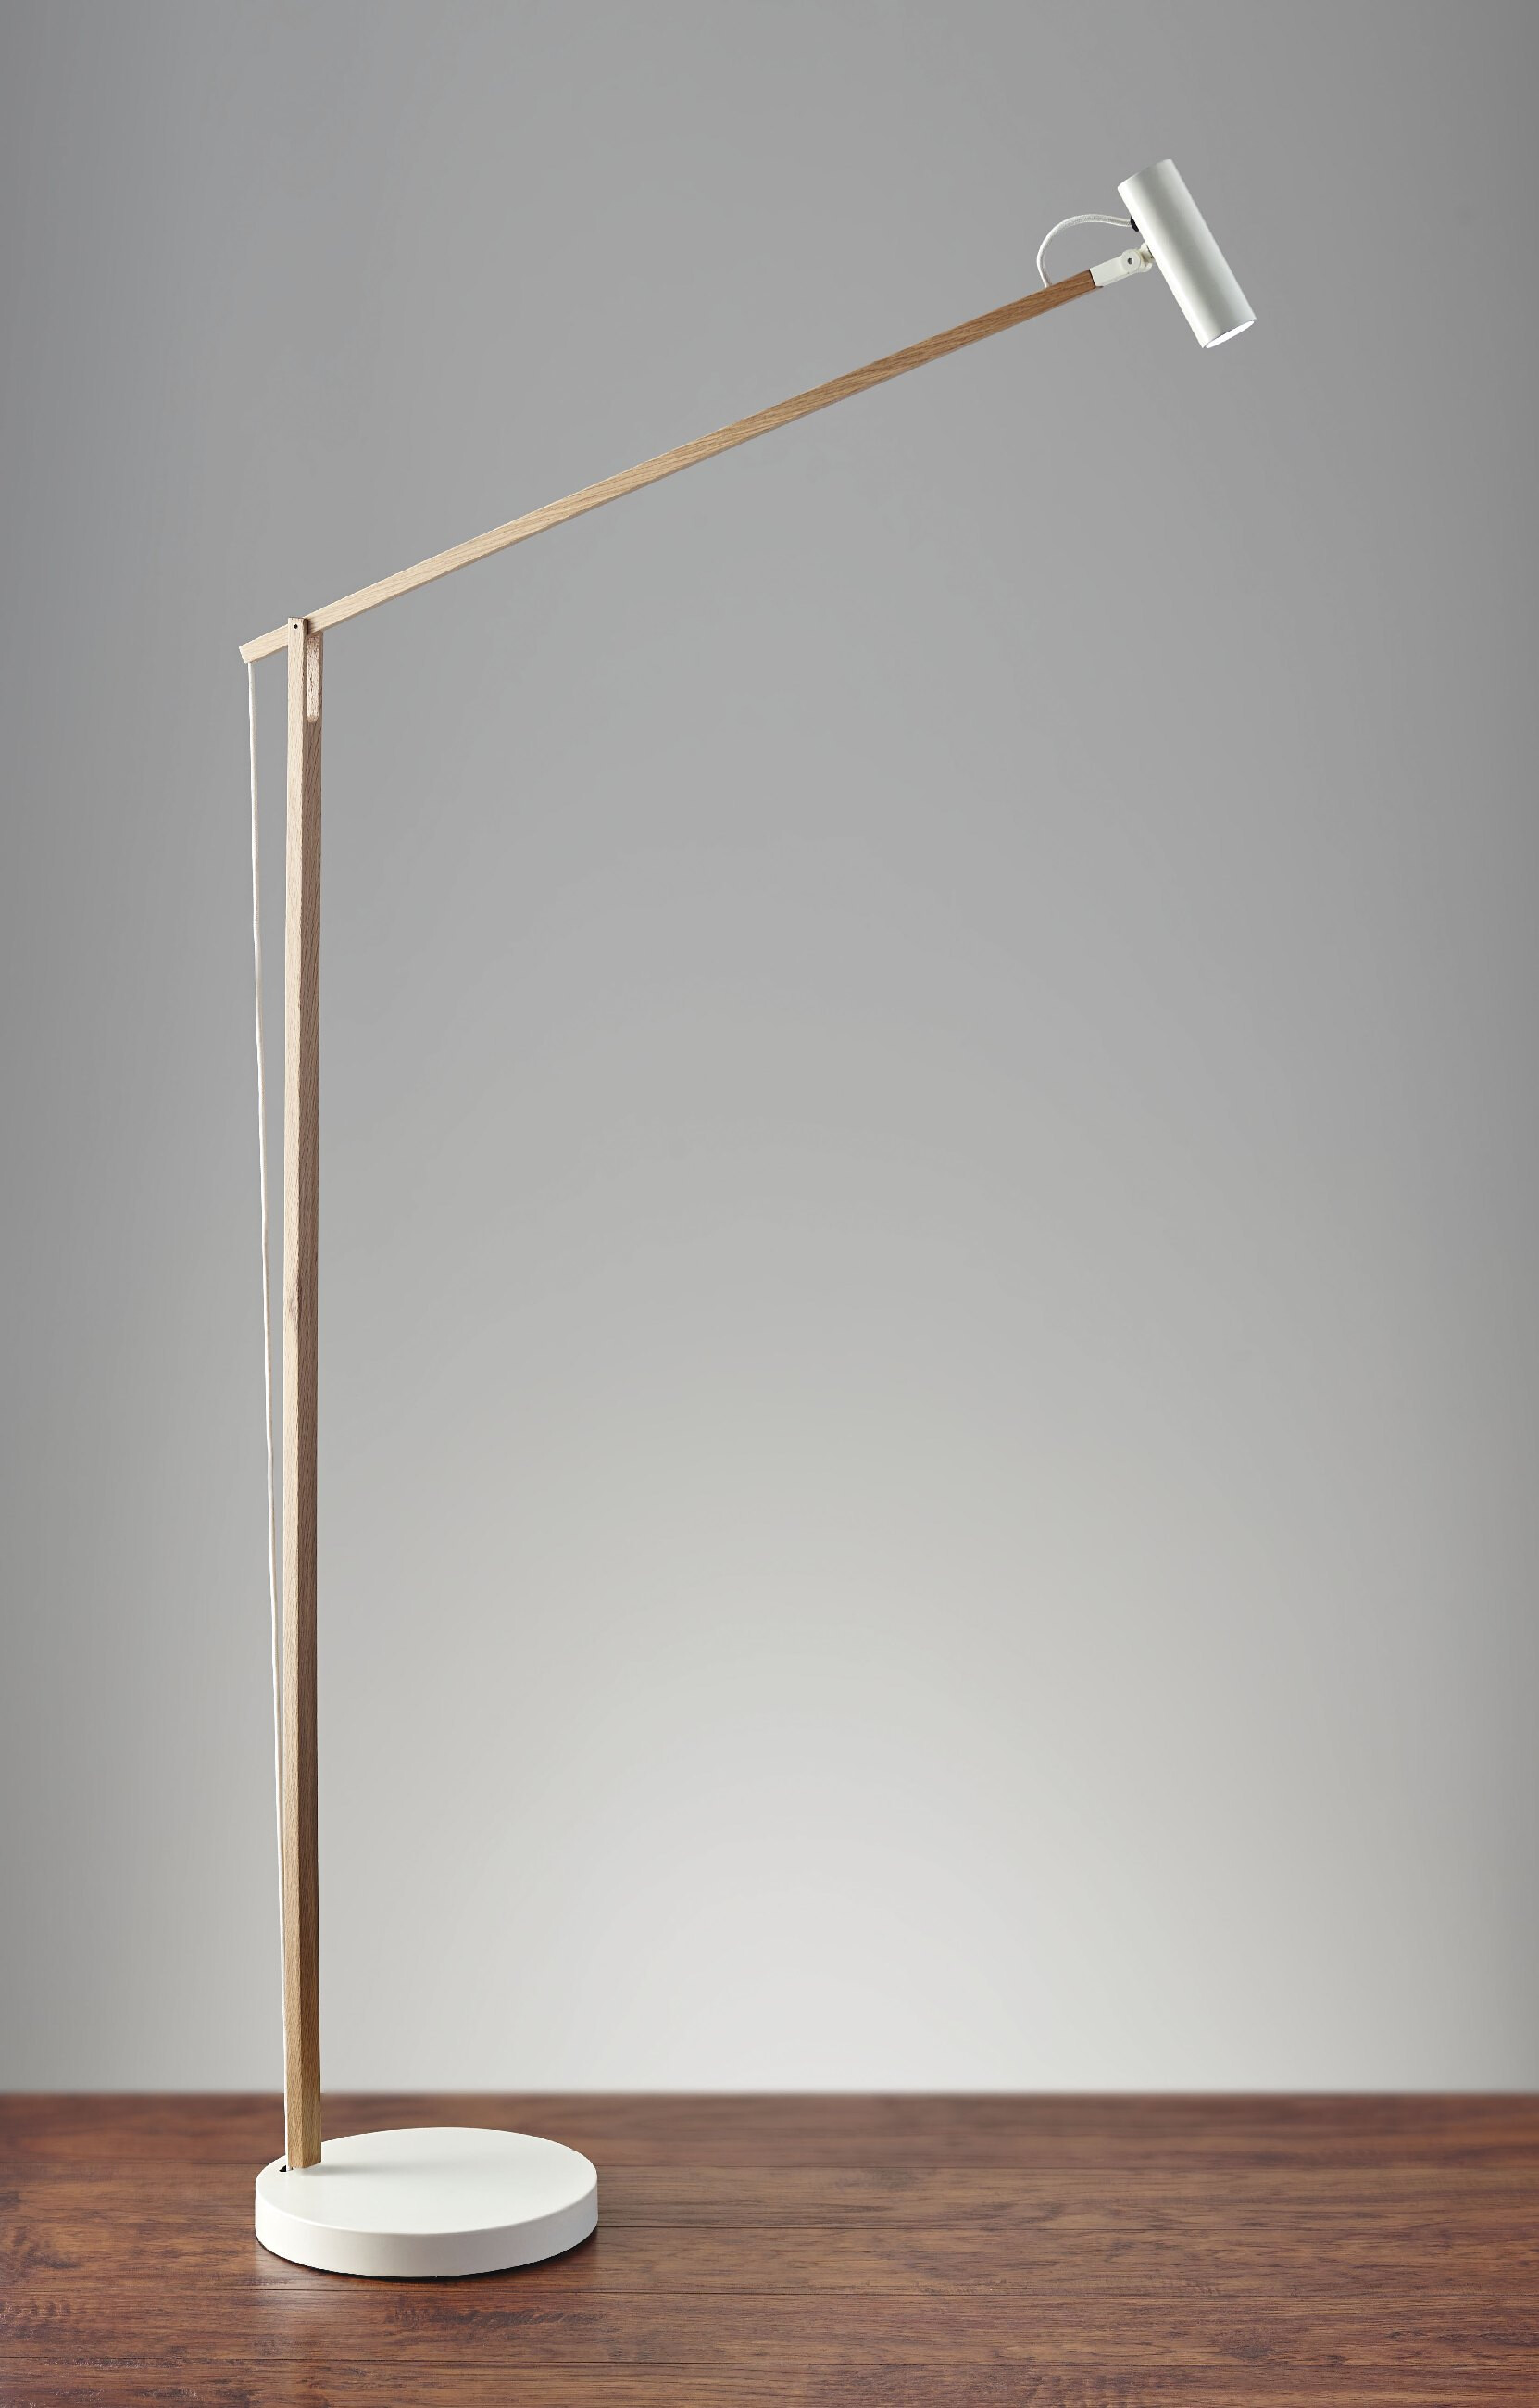 AD9101-12 Crane LED Floor Lamp